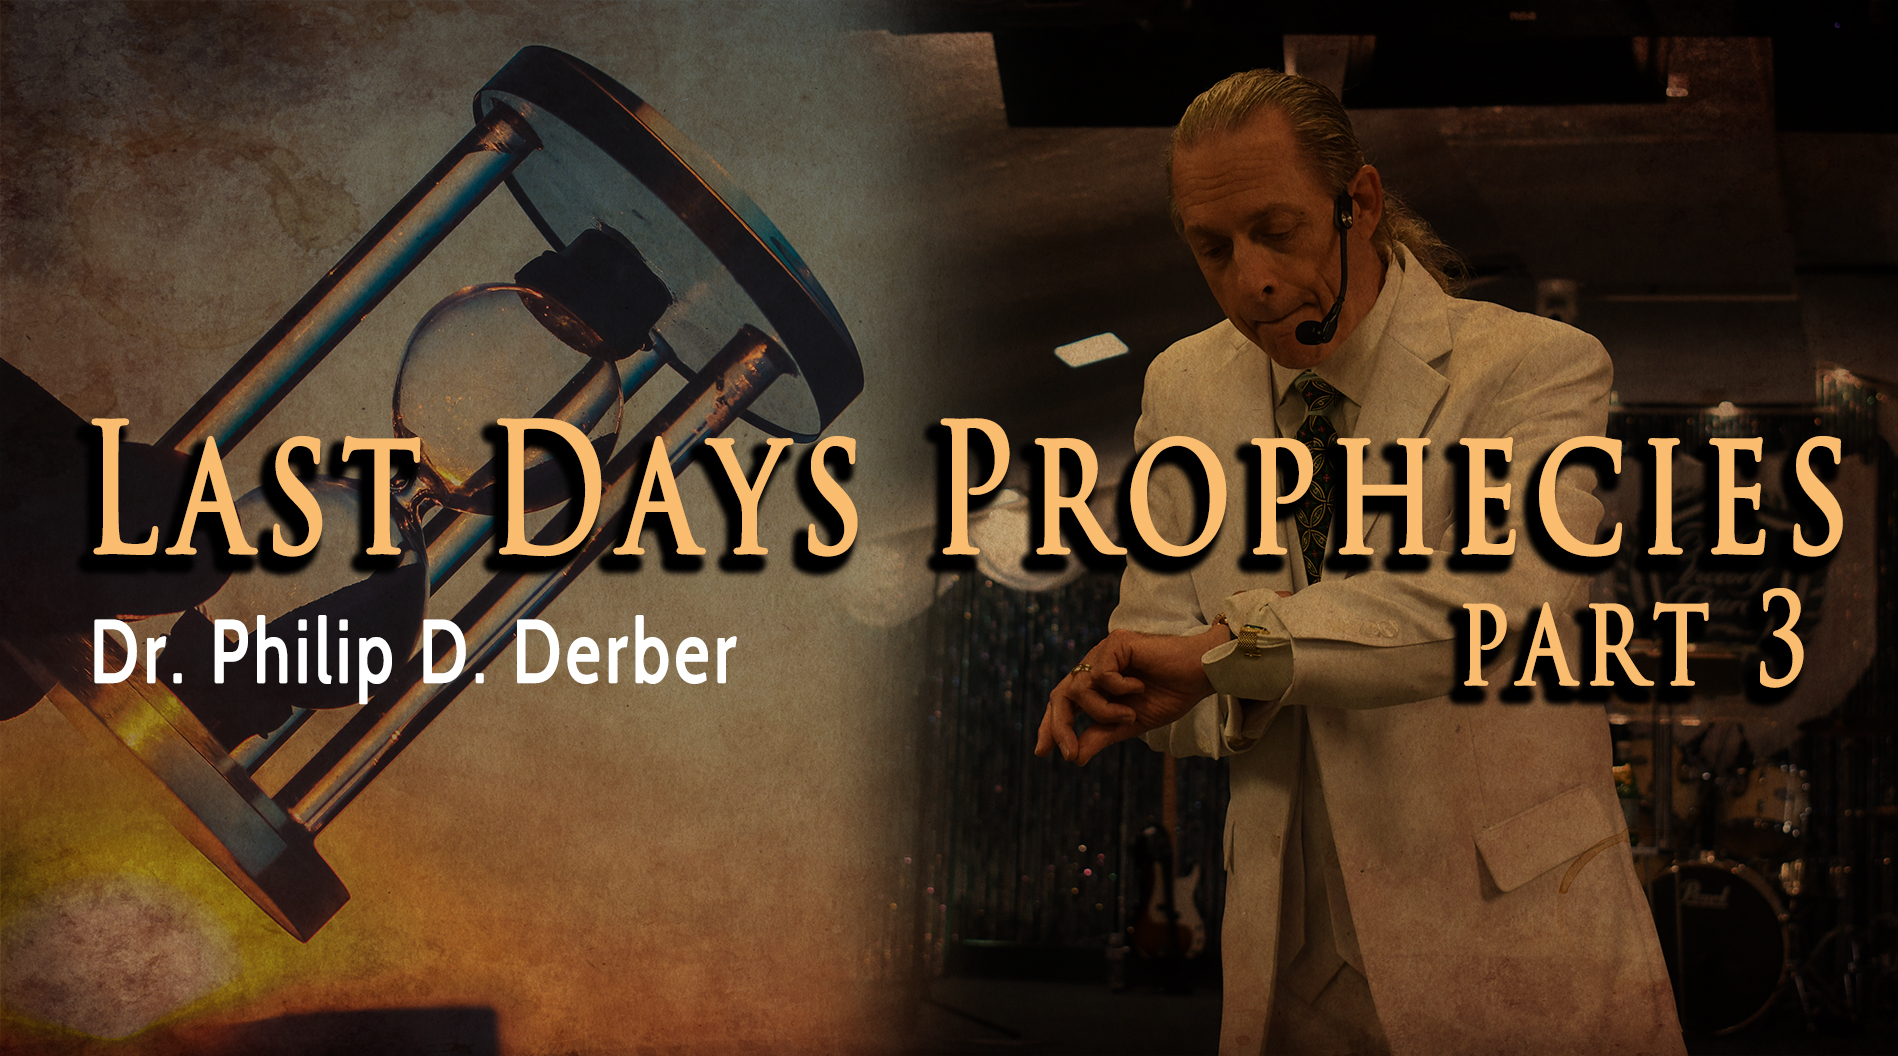 Last Days Prophecies 3